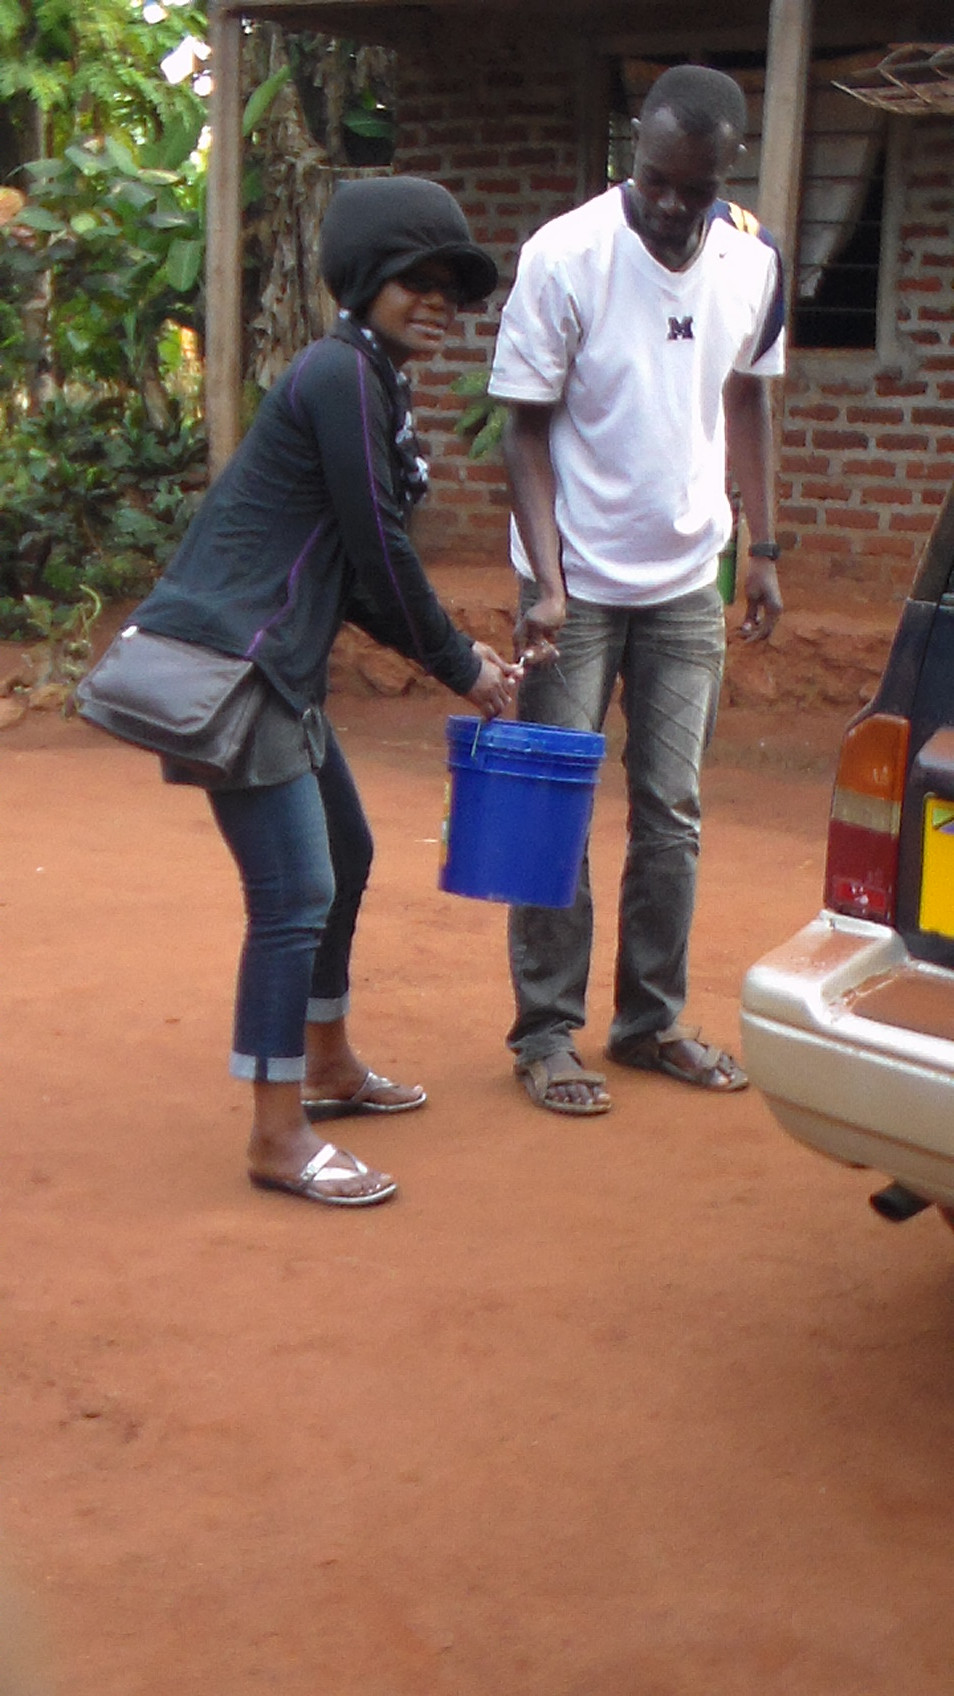 Étu helping to deliver water to the village